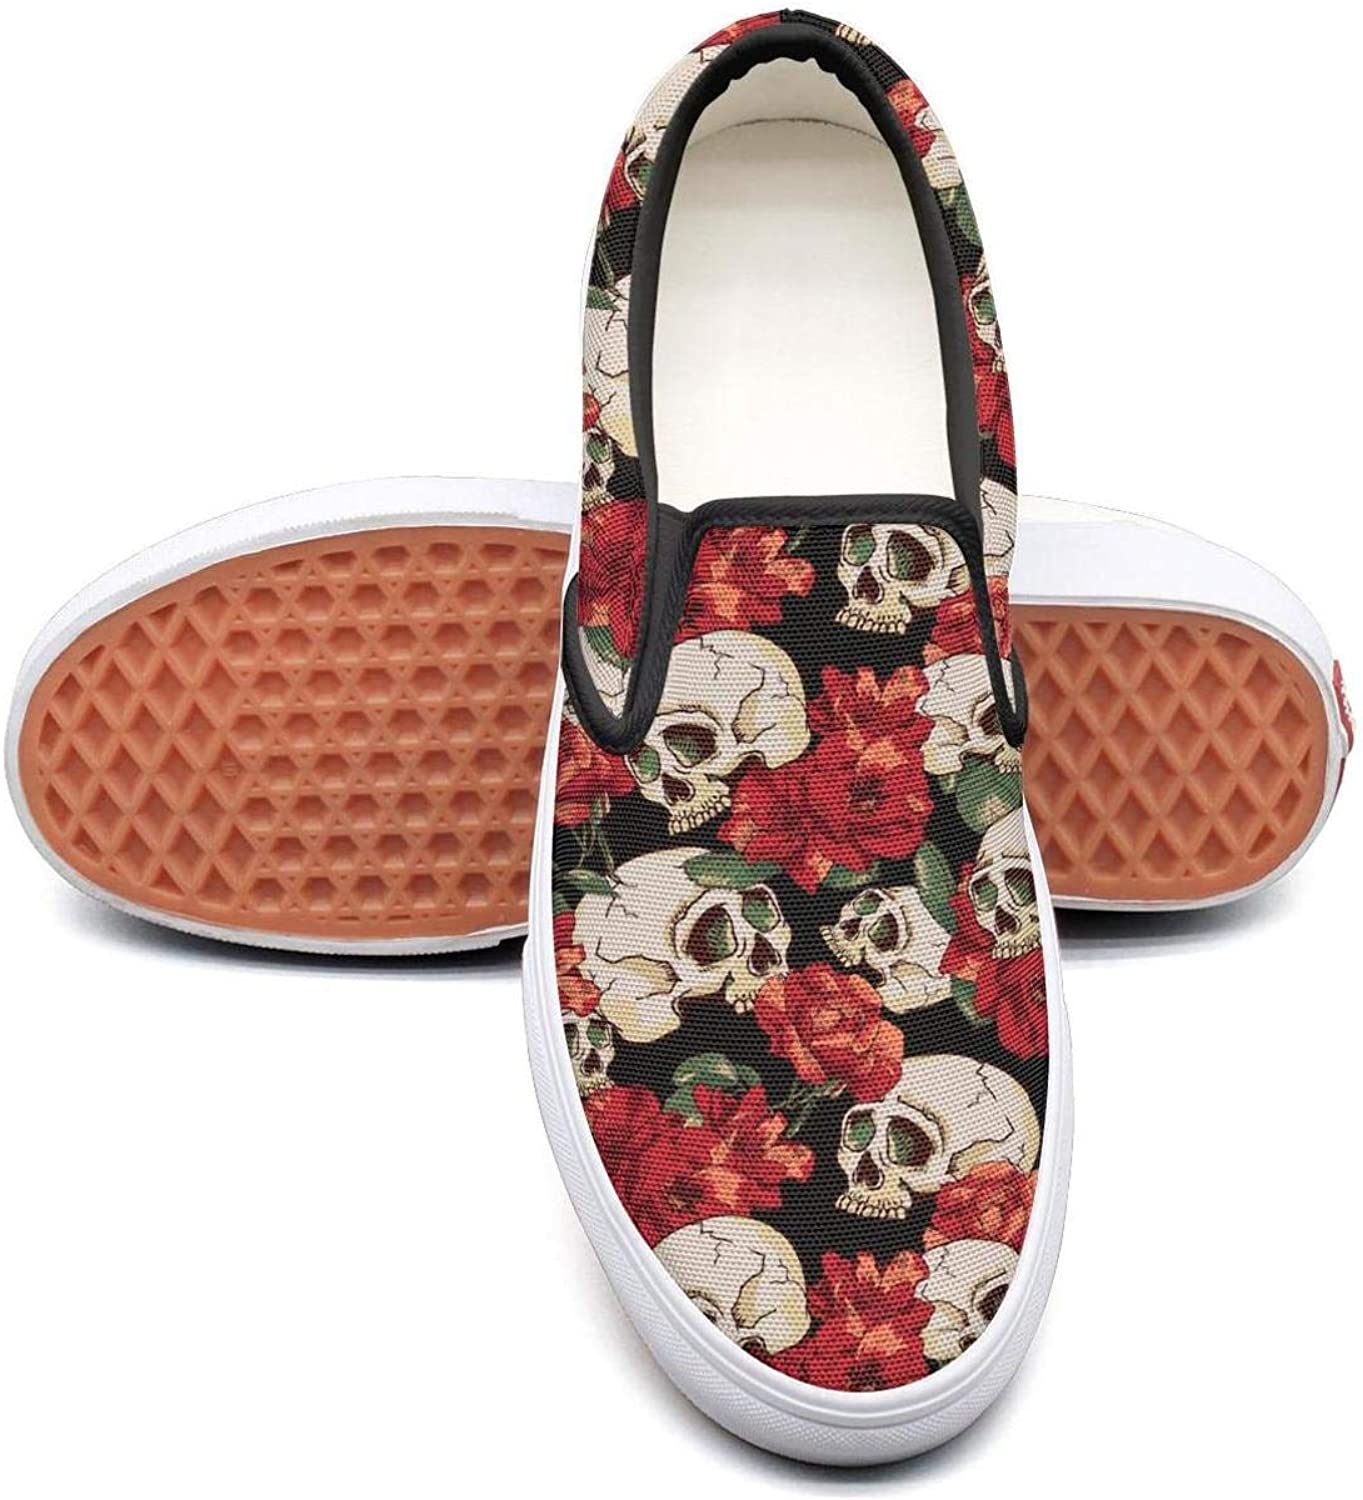 Candy Skull Slip On Superior Comfort Sneakers Canvas shoes for Women Fashion